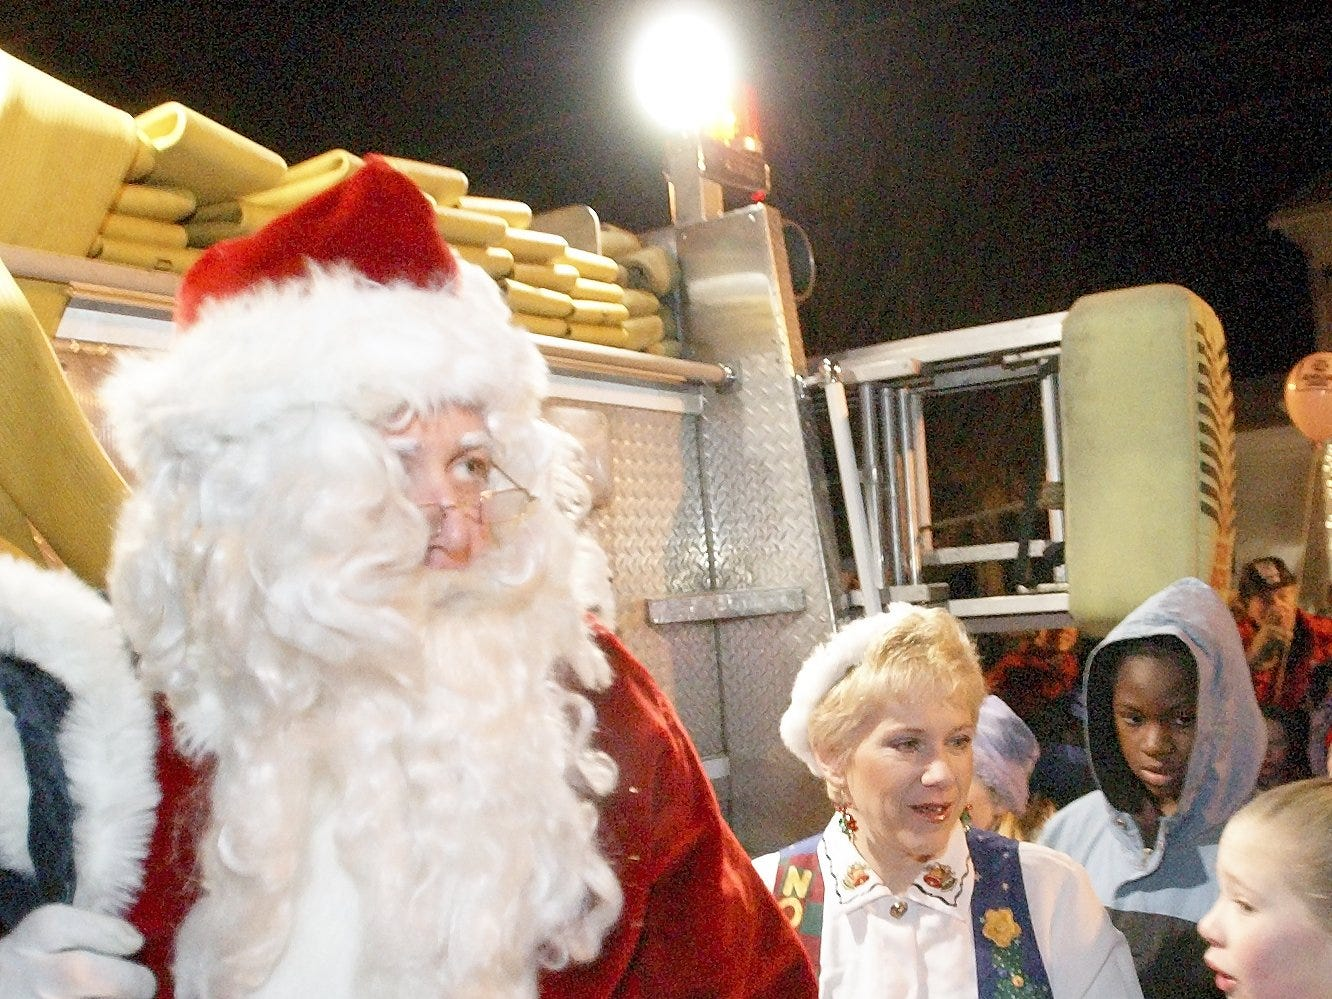 Santa Claus arrived Friday evening in downtown Trumansburg on the back of a firetruck during the annual Festival of Lights in 2003.